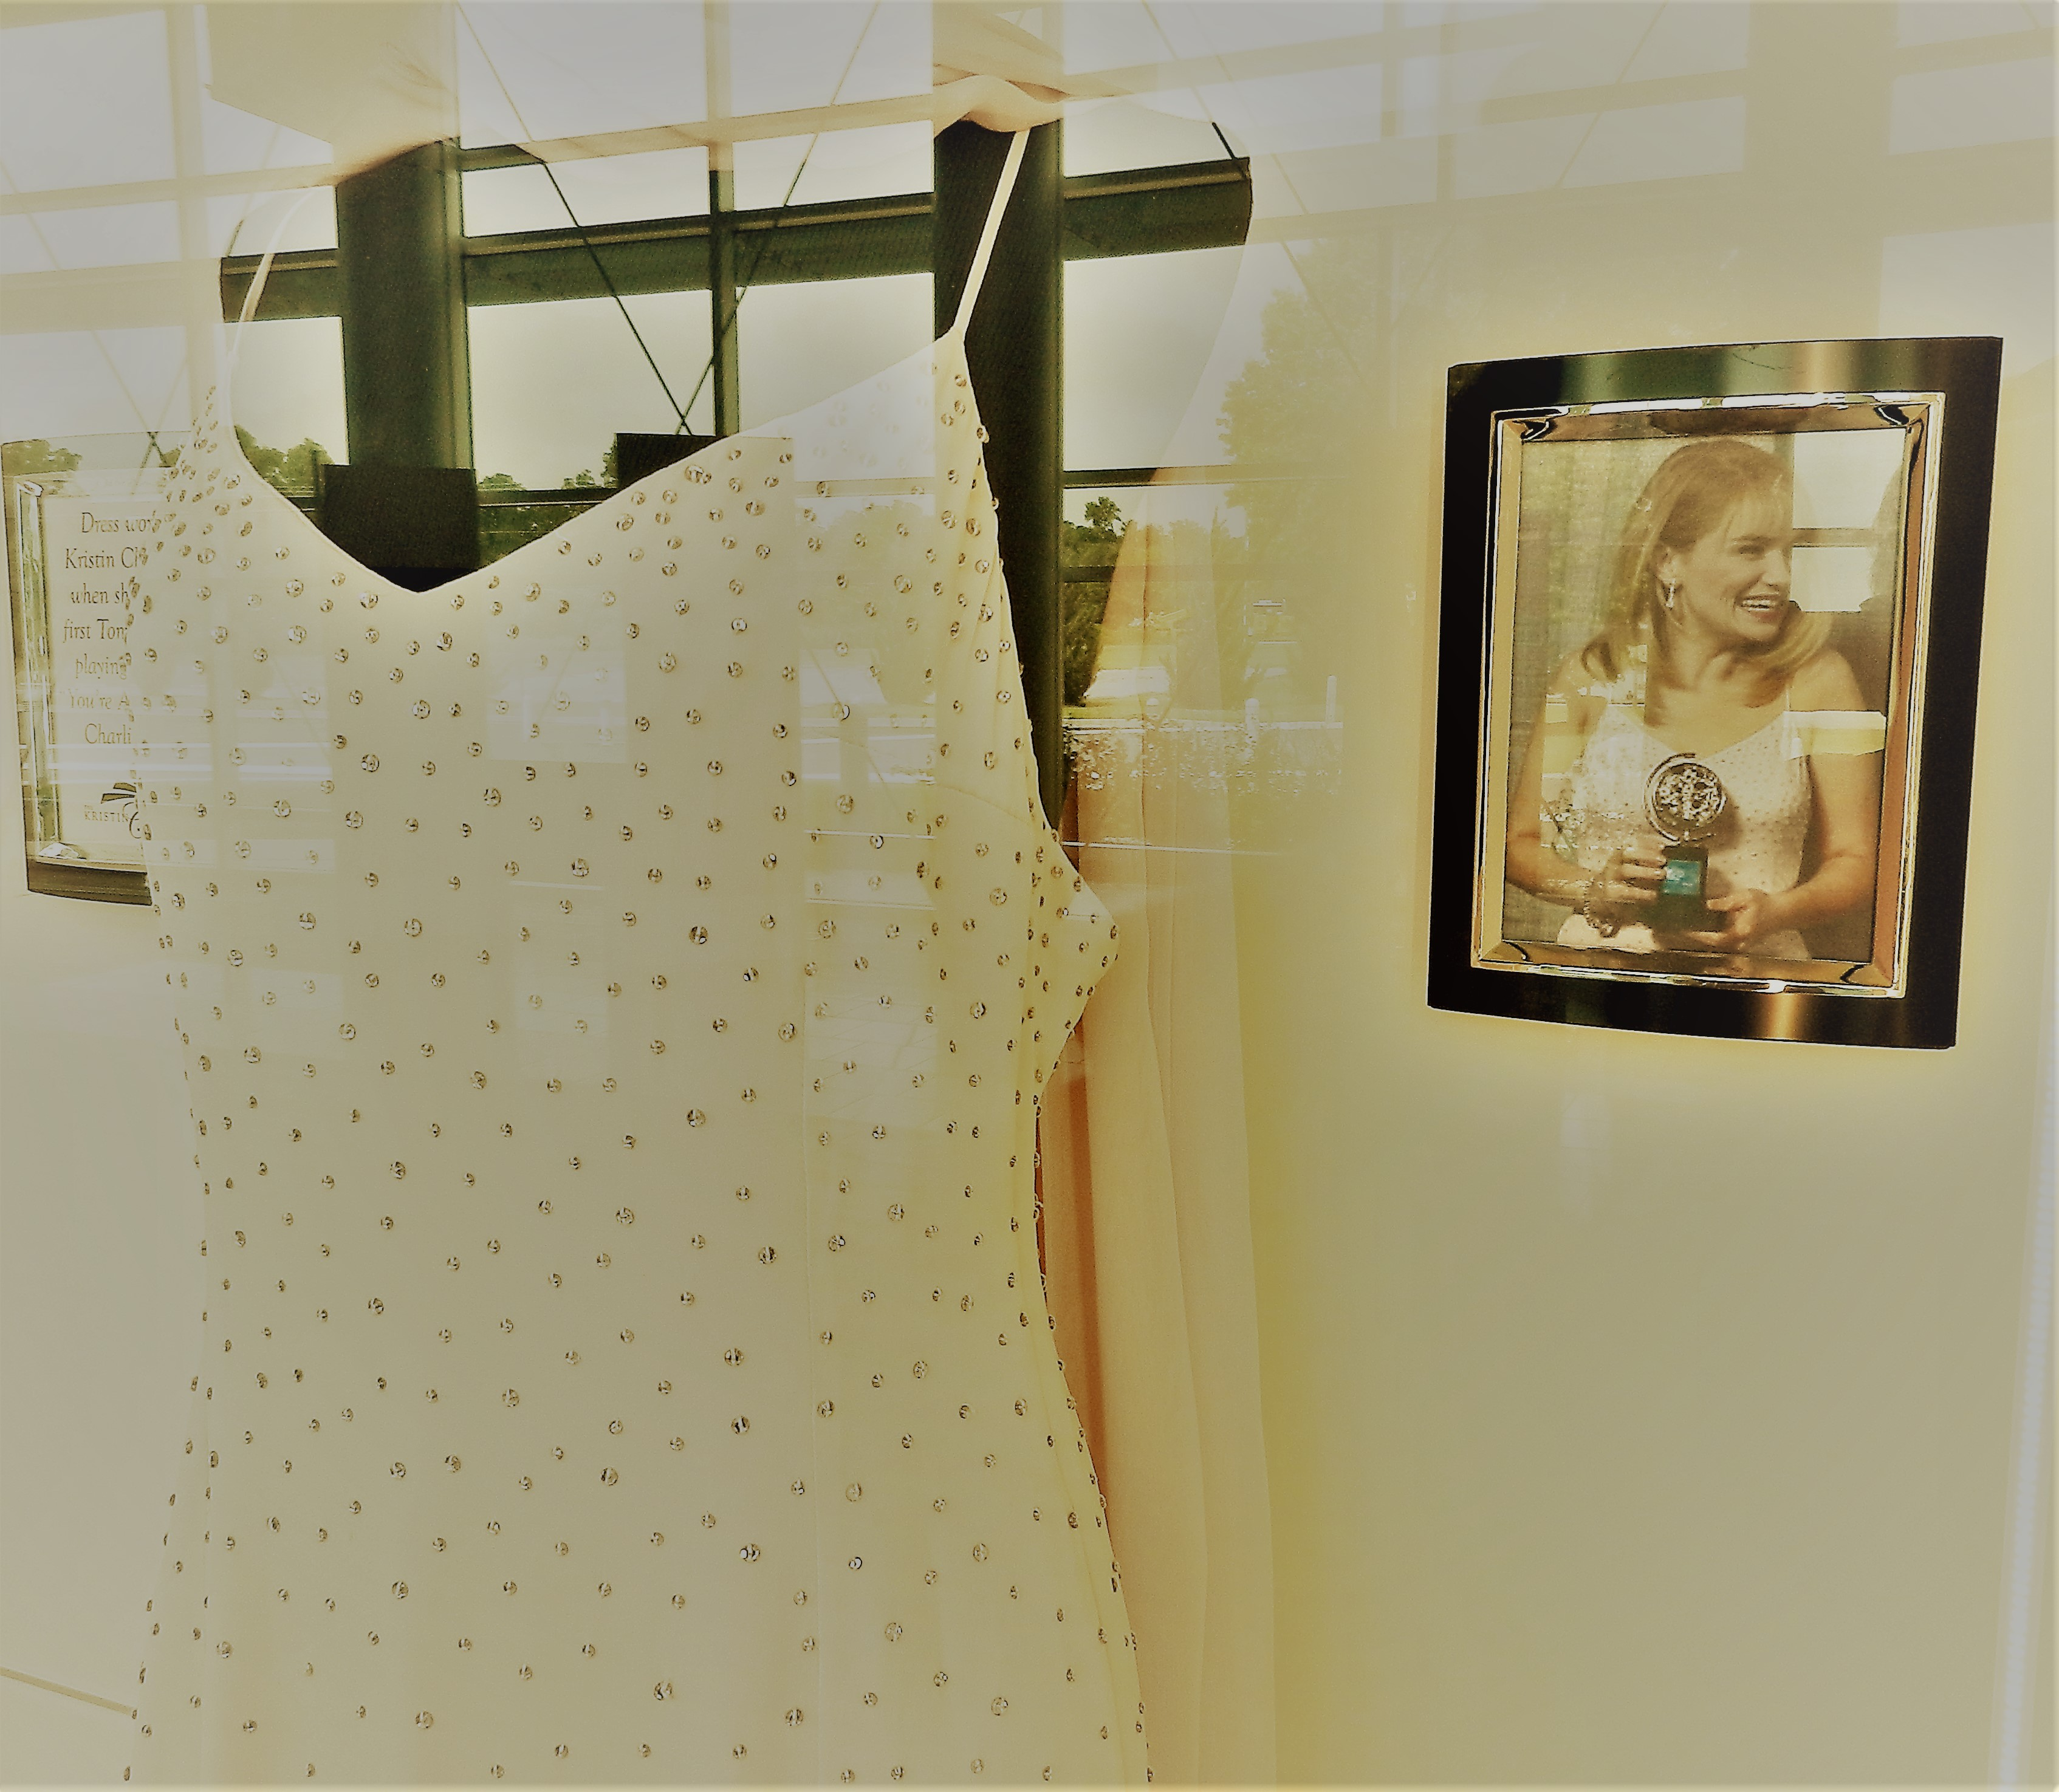 an evening gown on display next to a photo of Kristen Chenoweth